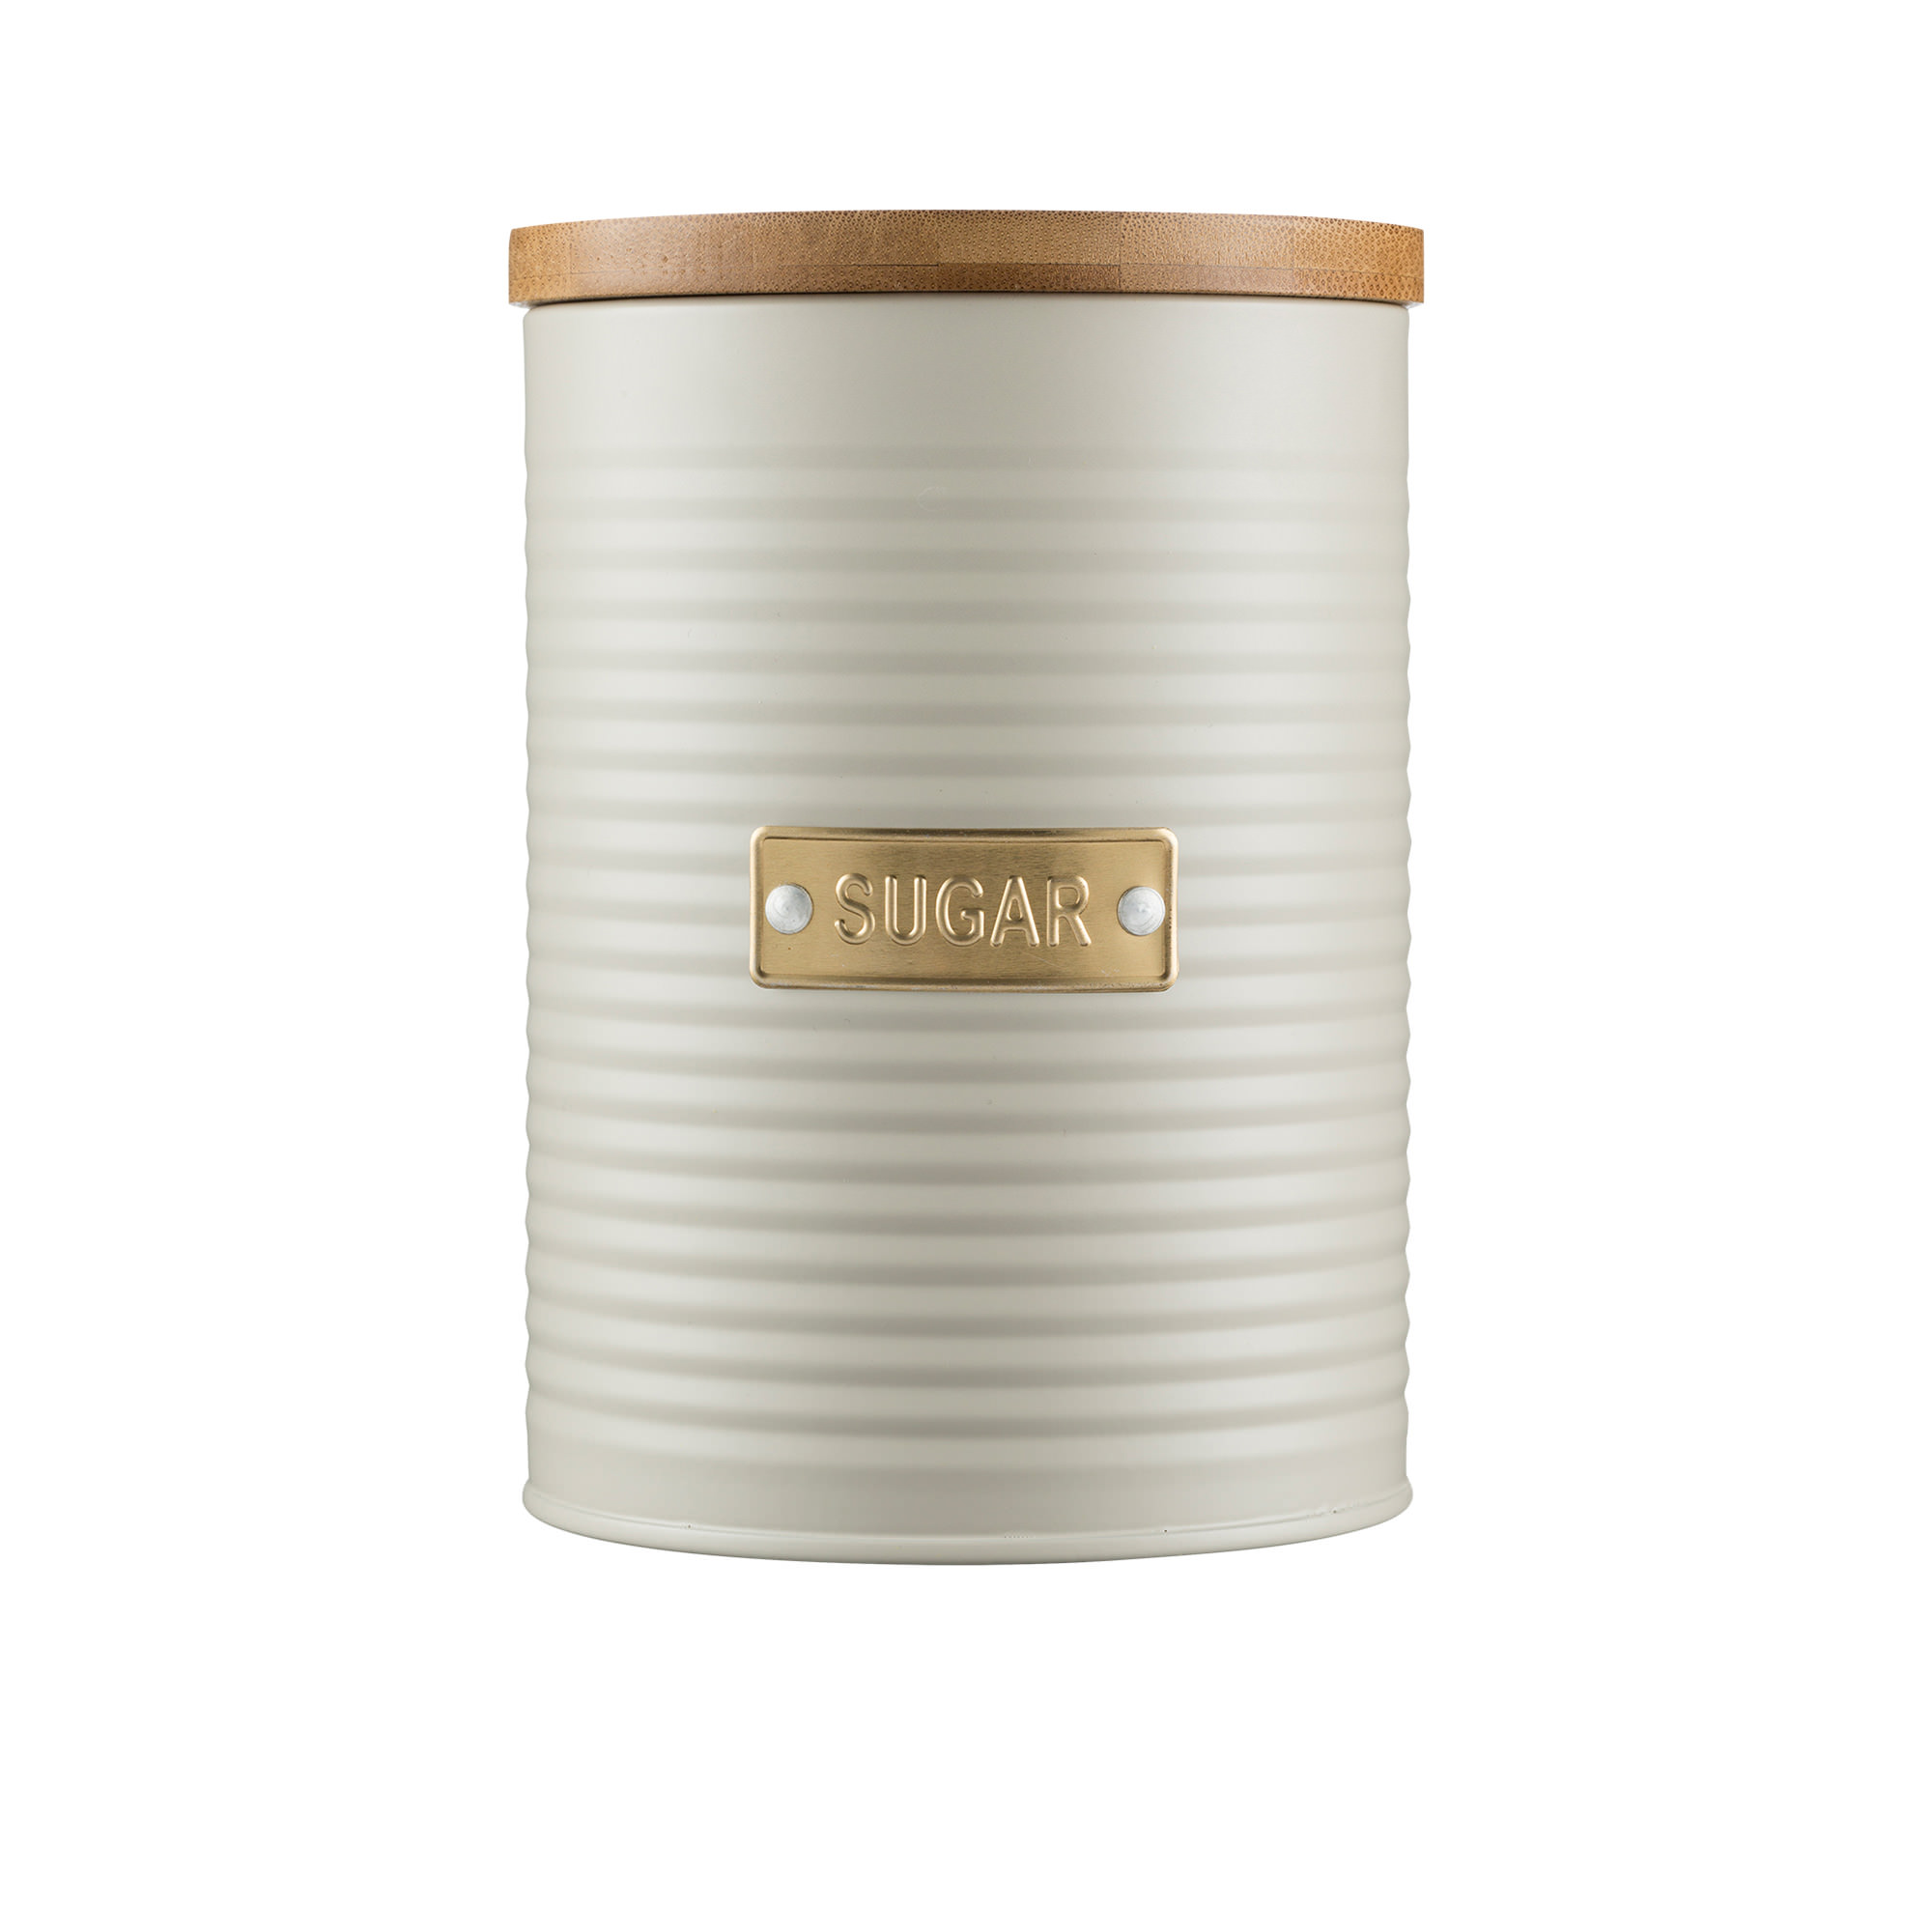 Typhoon Living Sugar Canister 1.4L Oatmeal